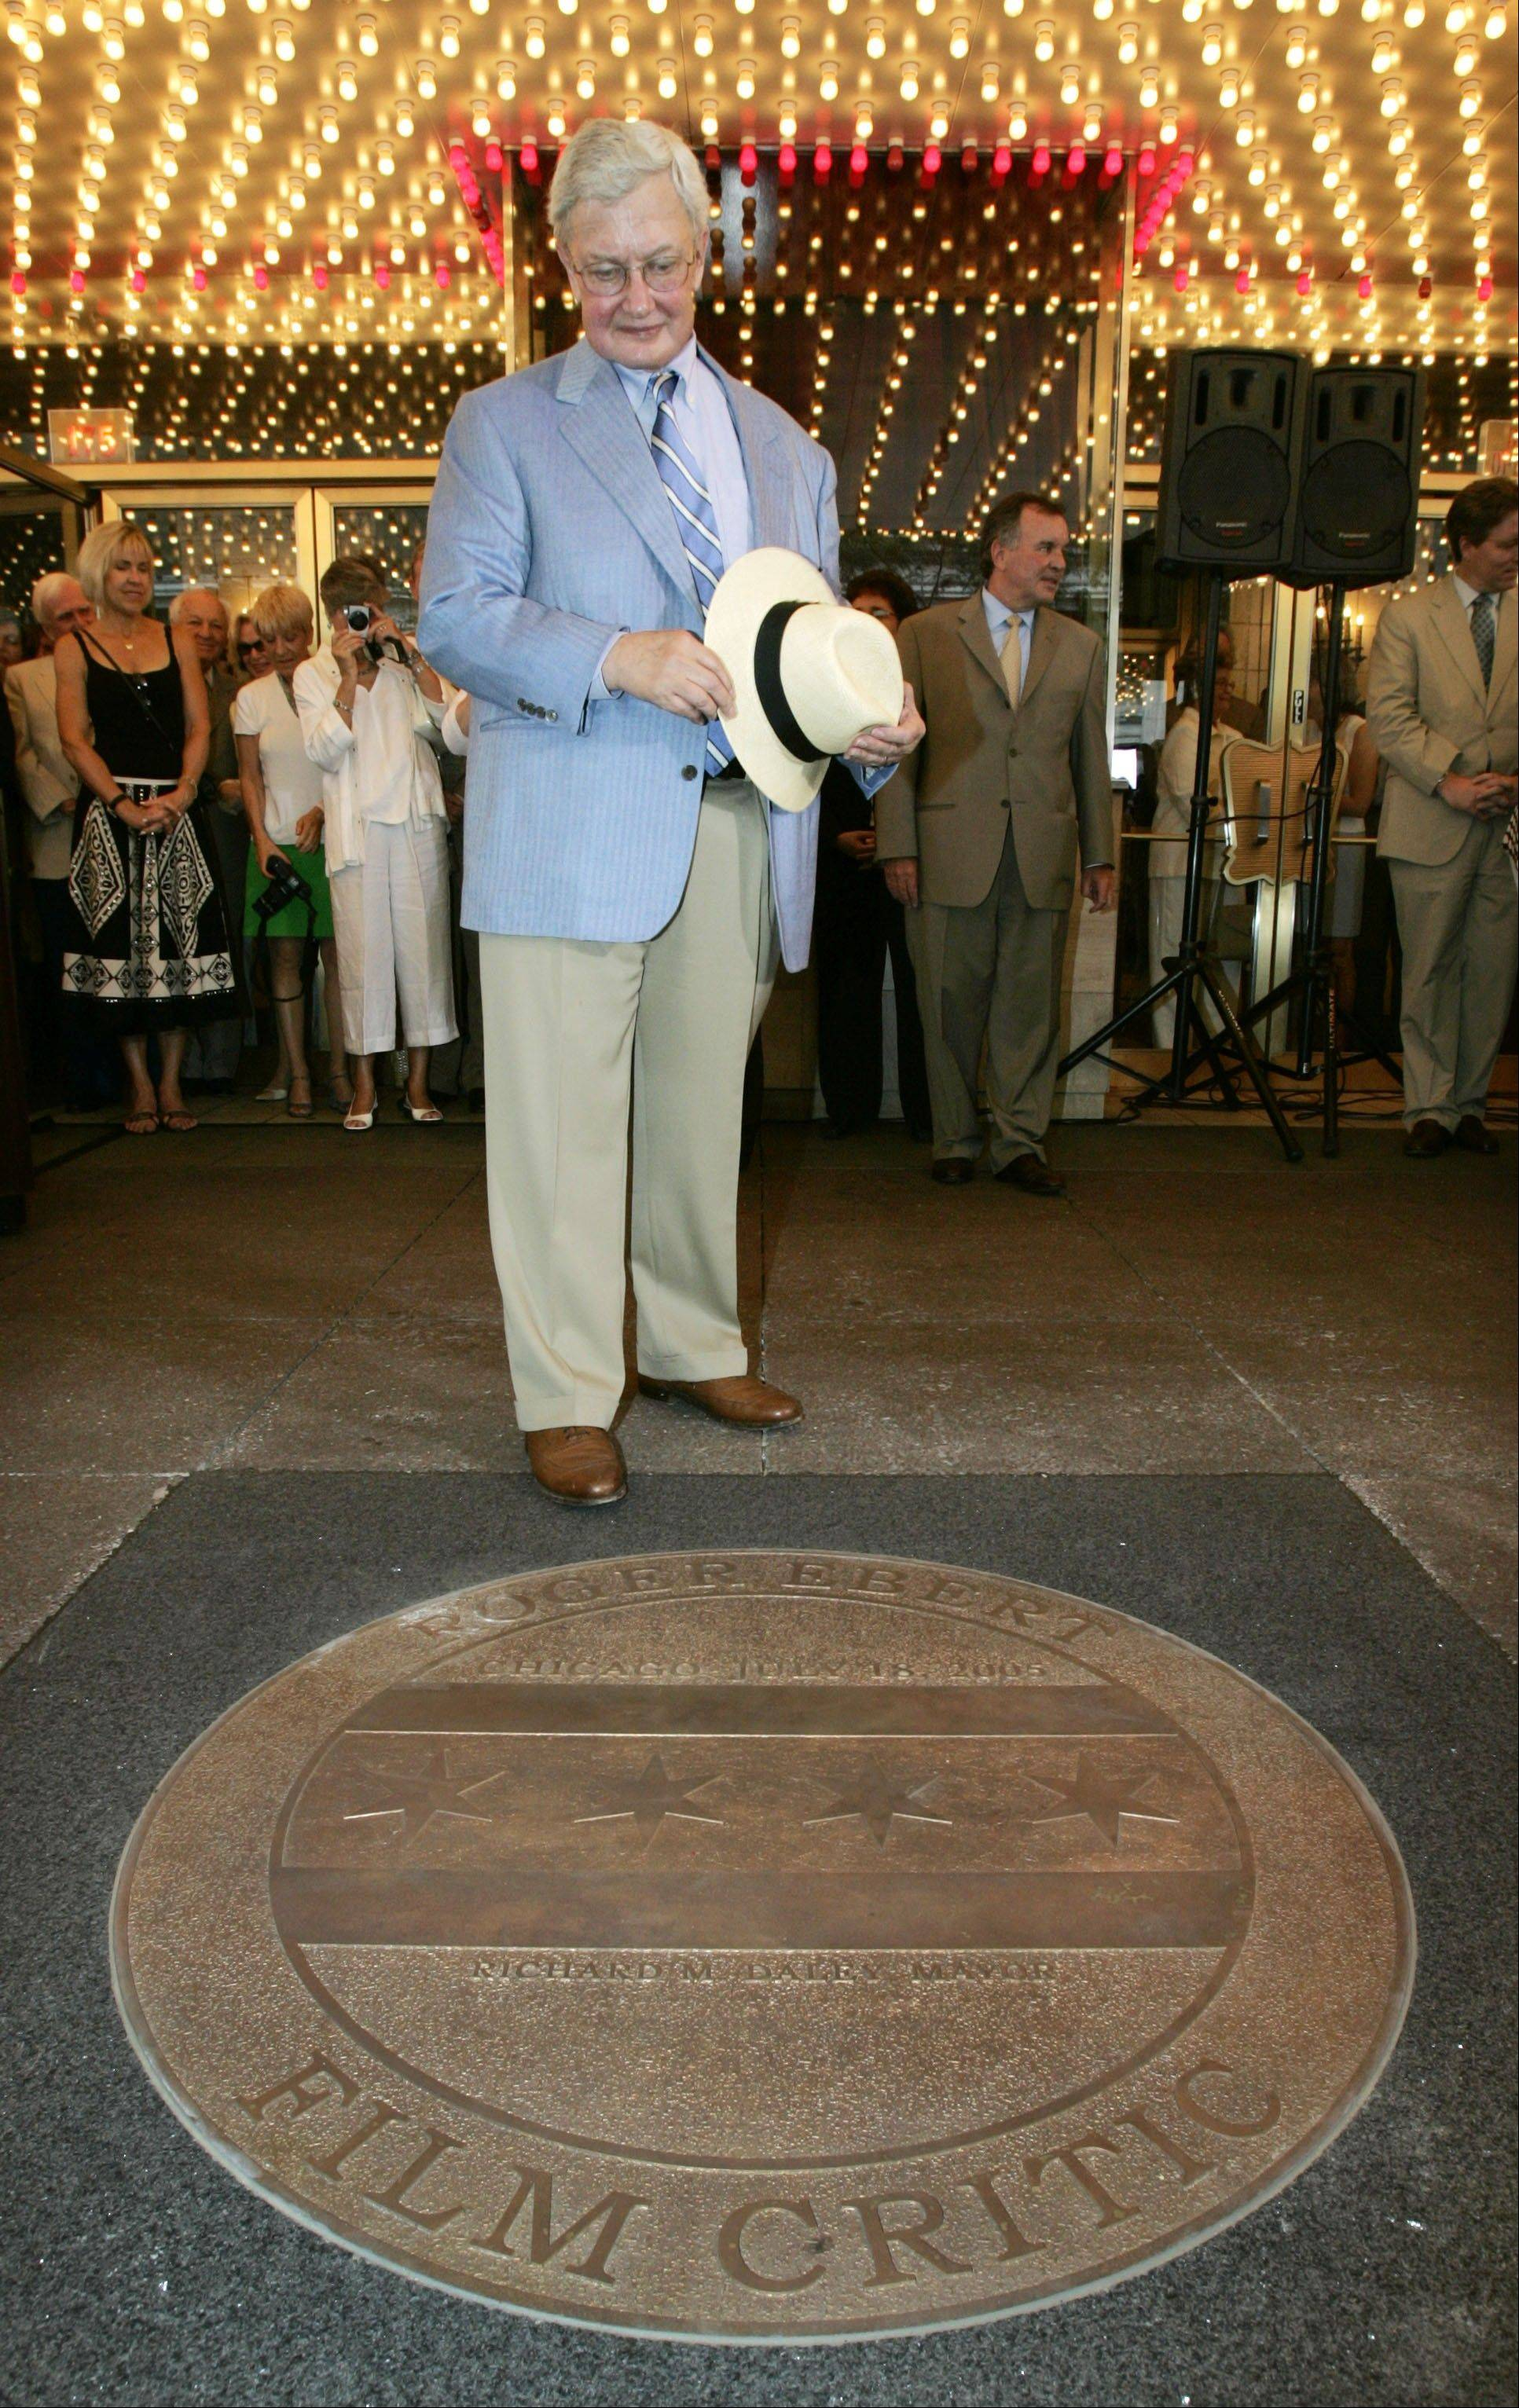 FILE - This July 18, 2005 file photo shows film critic Roger Ebert next to a sidewalk medallion bearing his name that was unveiled under the marquee of the historic Chicago Theatre. The Chicago Sun-Times is reporting that its film critic Roger Ebert died on Thursday, April 4, 2013. He was 70.